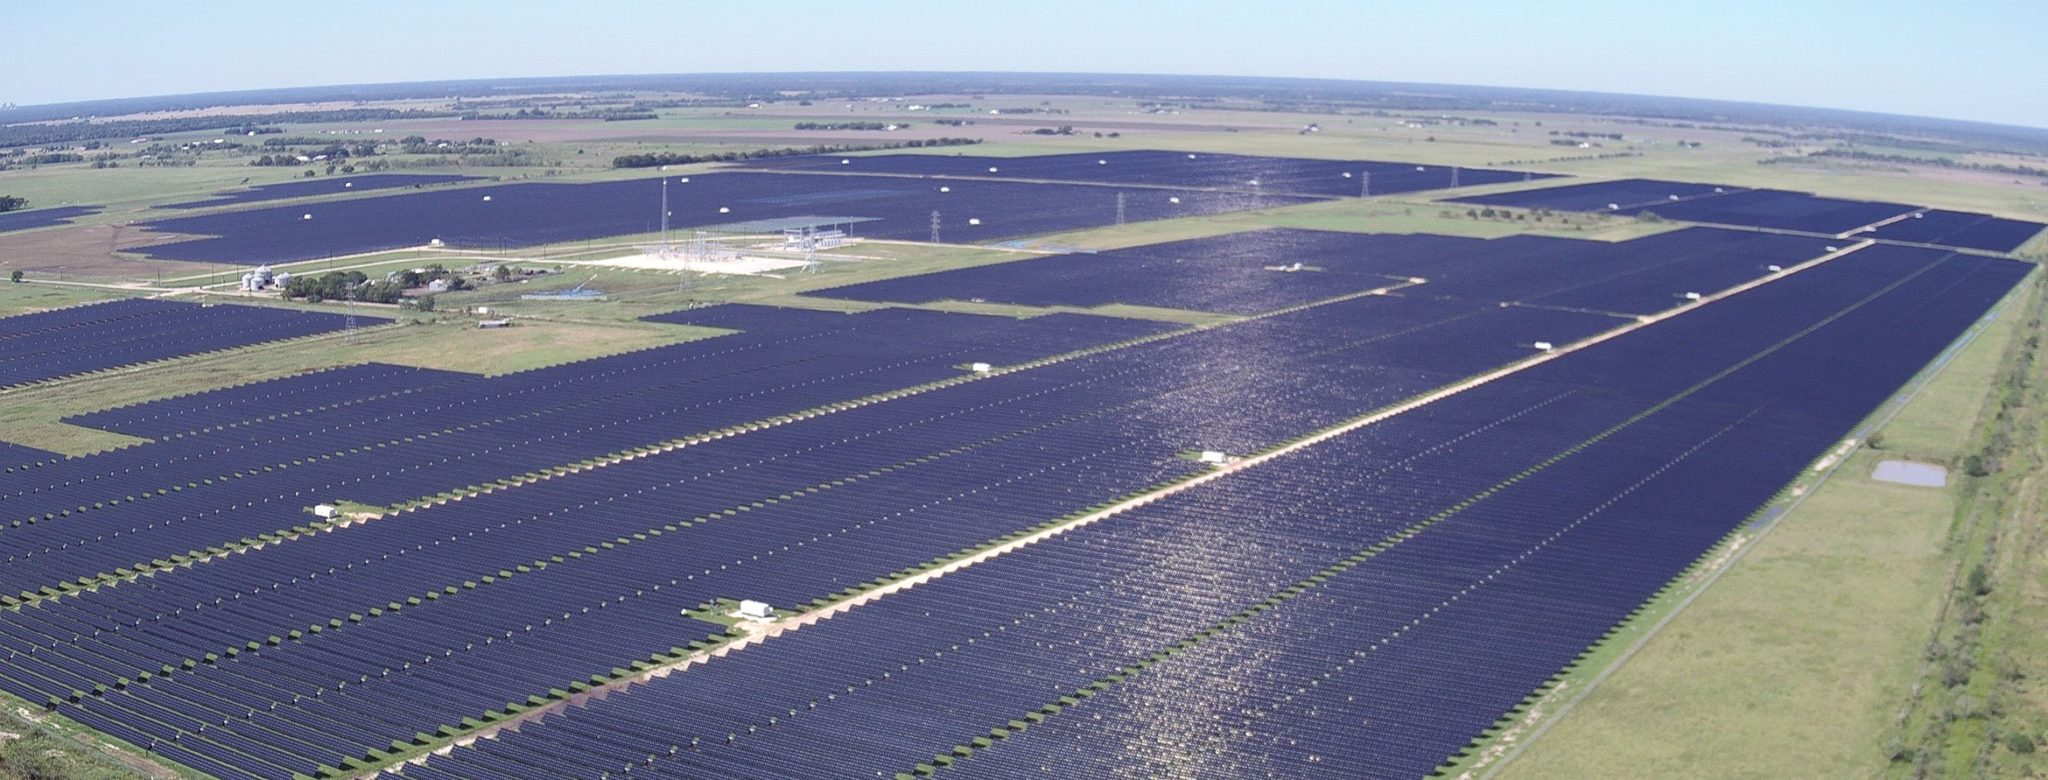 Morning Brief: Cypress Creek's 162-MW Wagyu project is delivering power, Sunlight Financial hits $3 billion